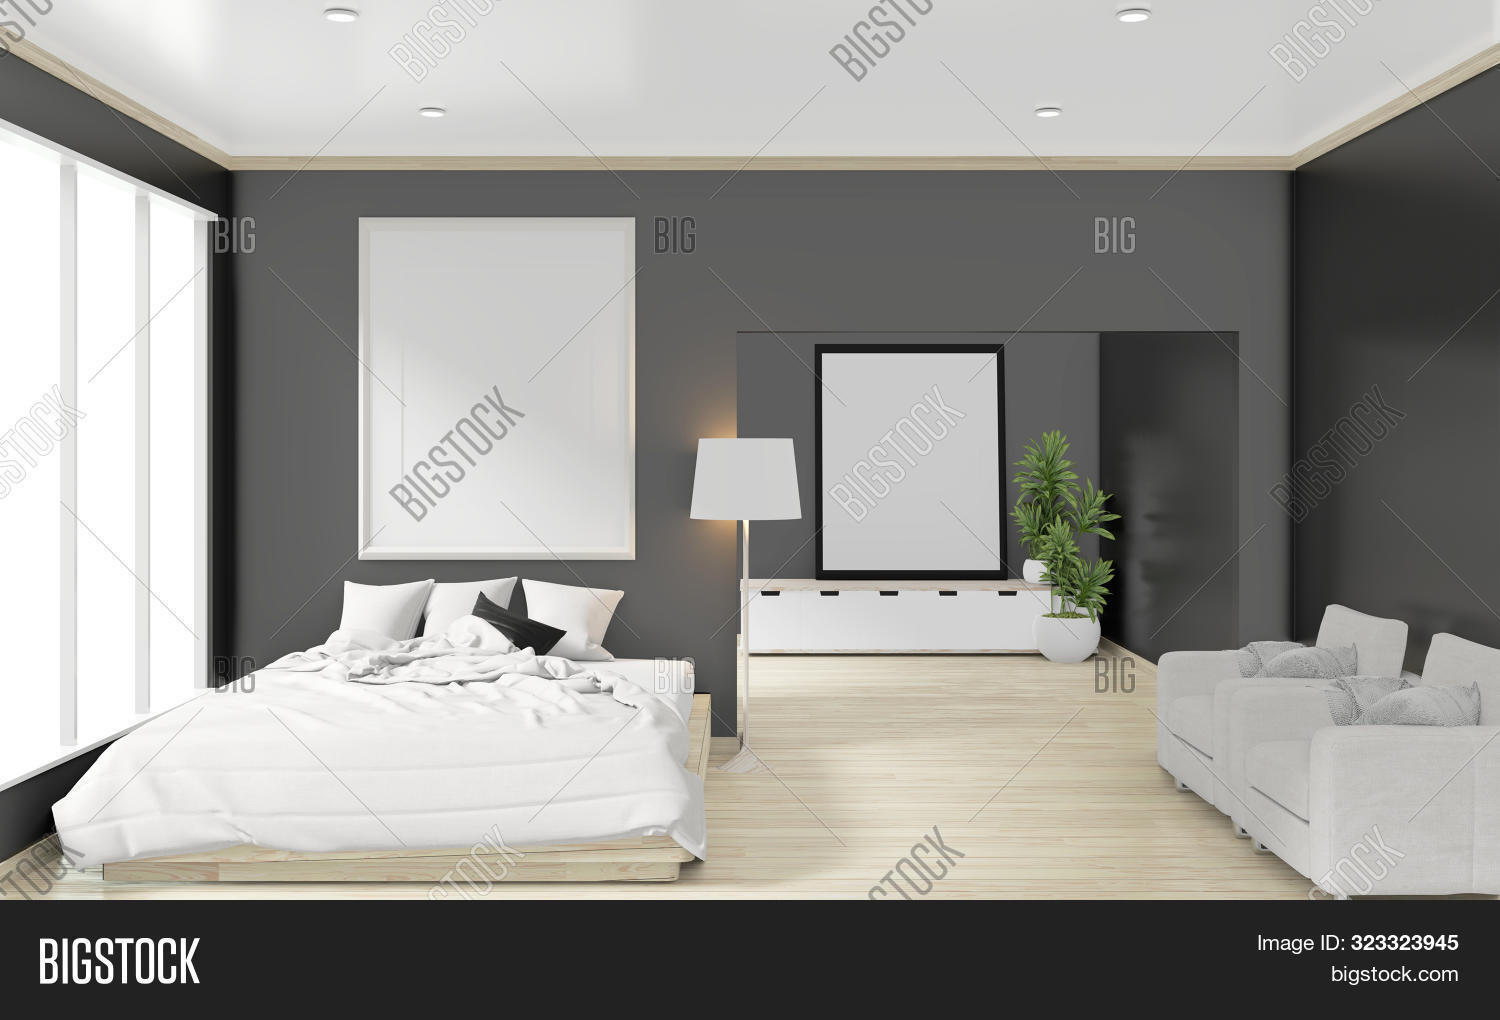 Wooden Bed Frame Image Photo Free Trial Bigstock